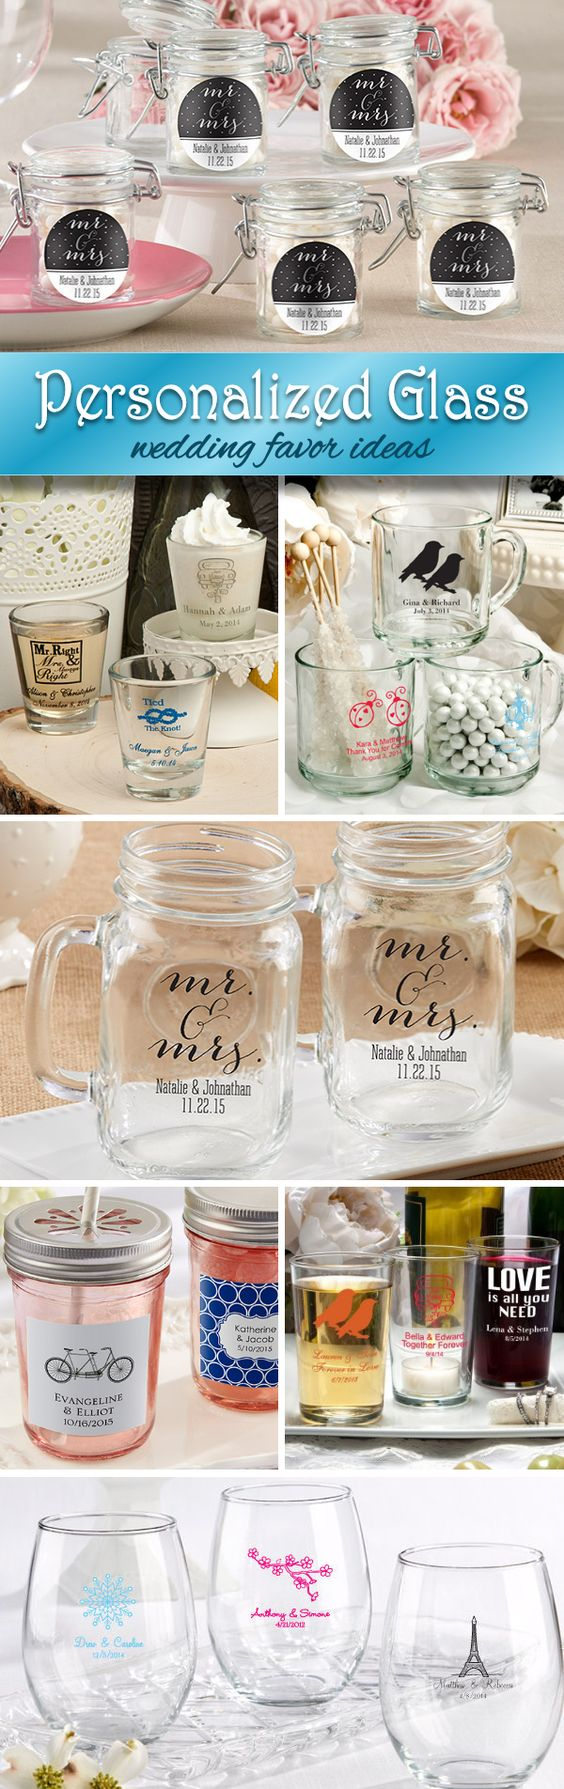 A Great Way To Add A Personal Touch To Your Big Day!  Personalized glassware favors such as shot glasses and candy jars or reception glasses such as custom mason jars or stemless champagne flutes.